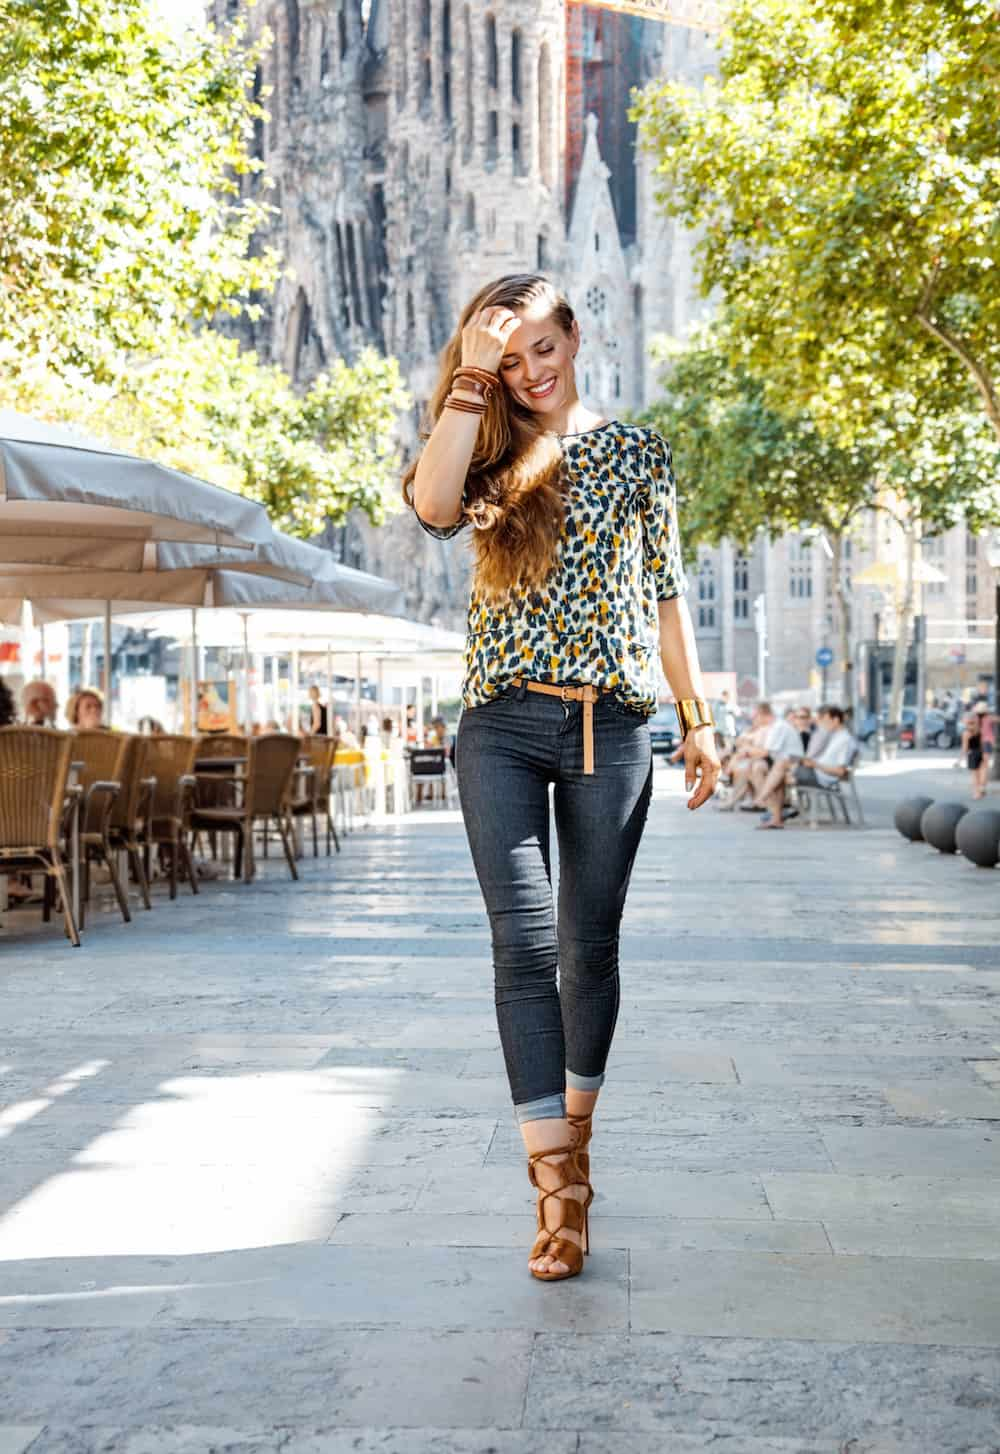 3c927fe742cd How to Dress in Barcelona According to Season - Latitude 41